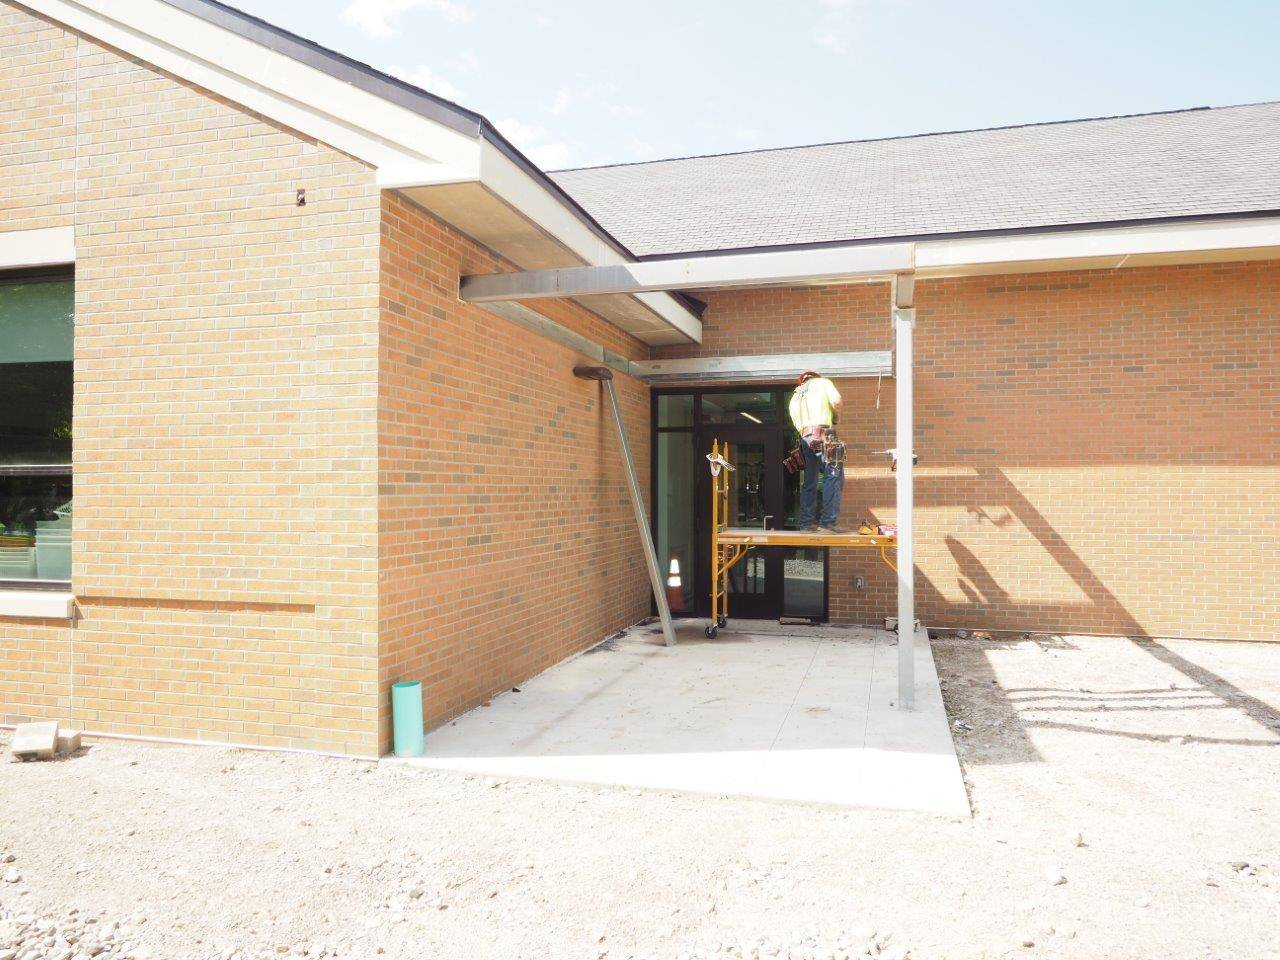 Exterior work on the Tremont Elementary School addition